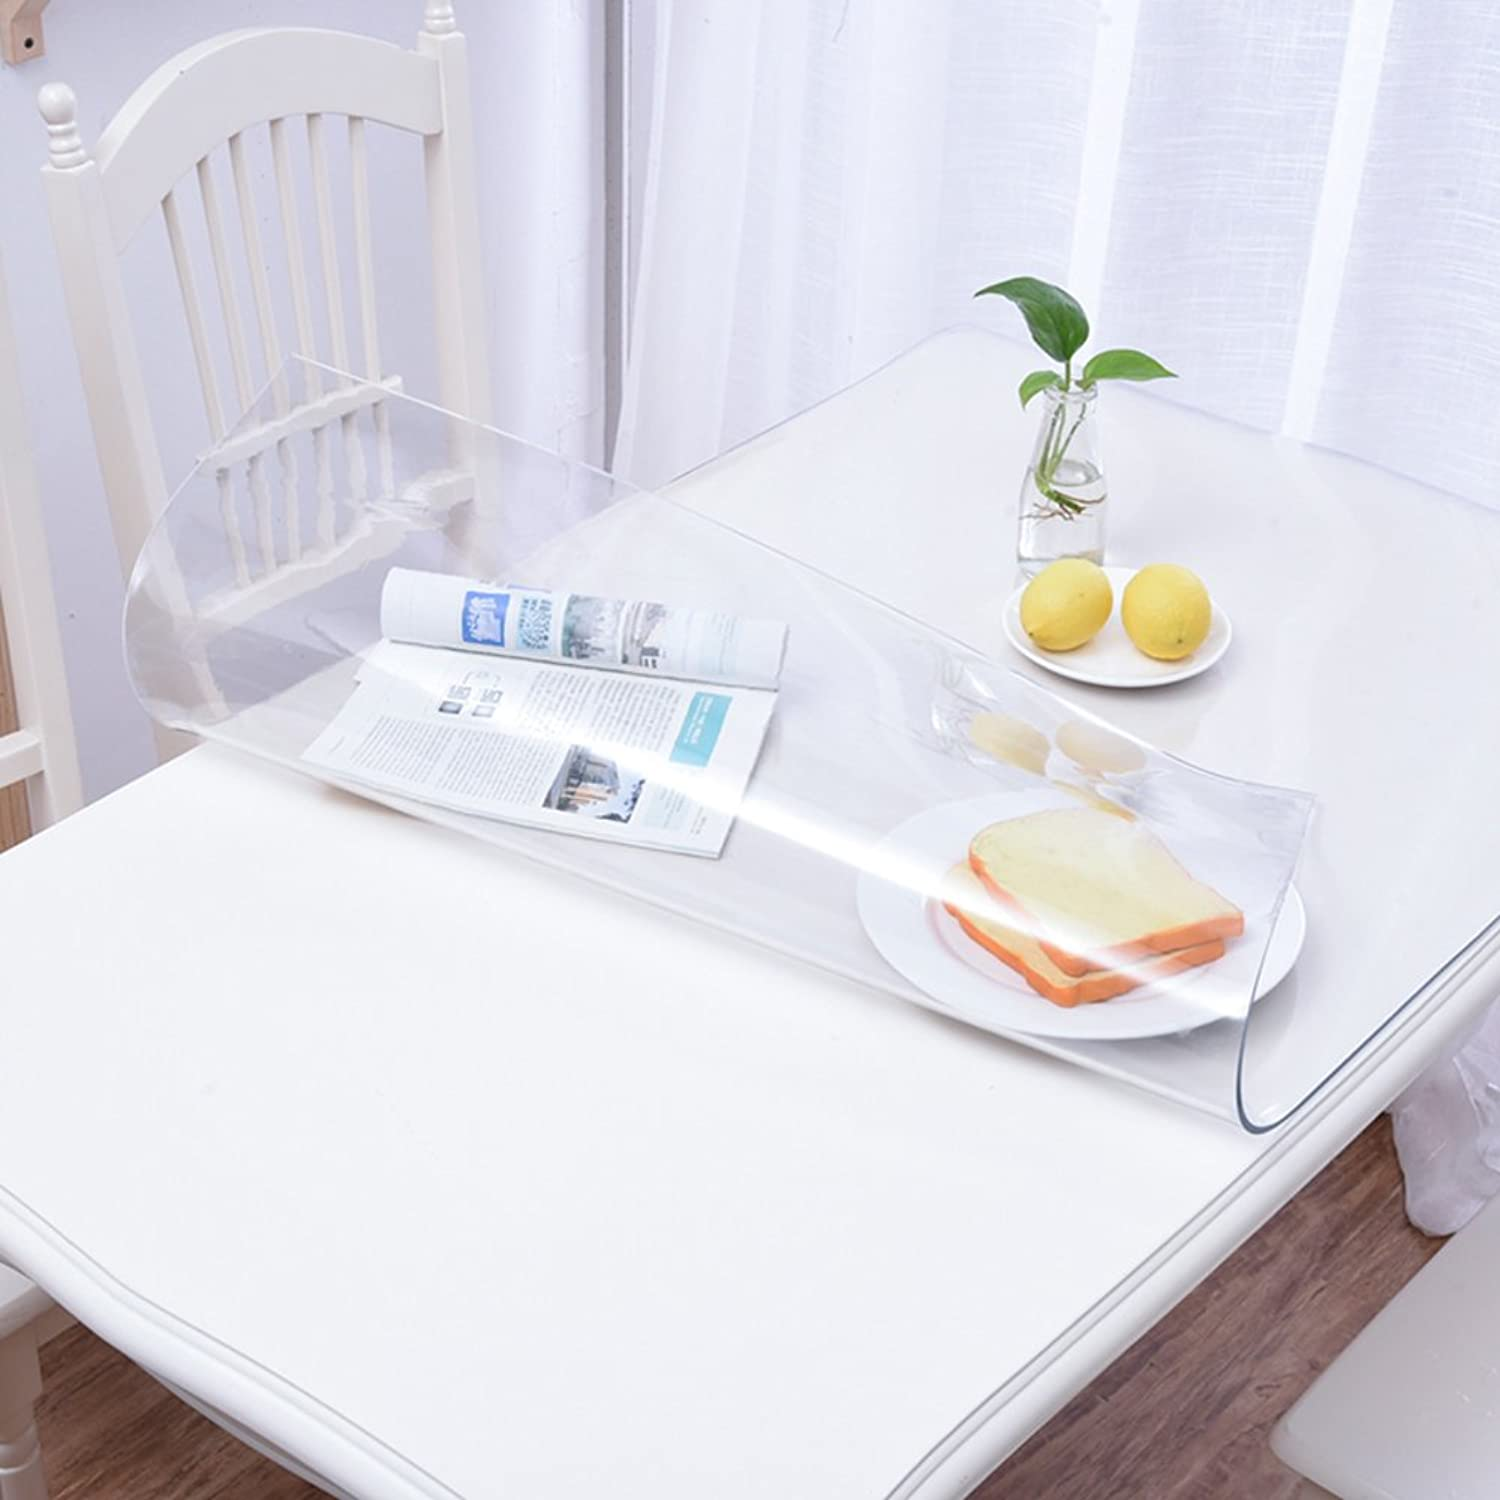 Clear Table Cloth Predector, Waterproof Rectangle Thicken PVC Soft Transparent Dining Table Cover for Wooden Glass Marble Desktop-Clear 5.0mm 90x90cm(35x35in)